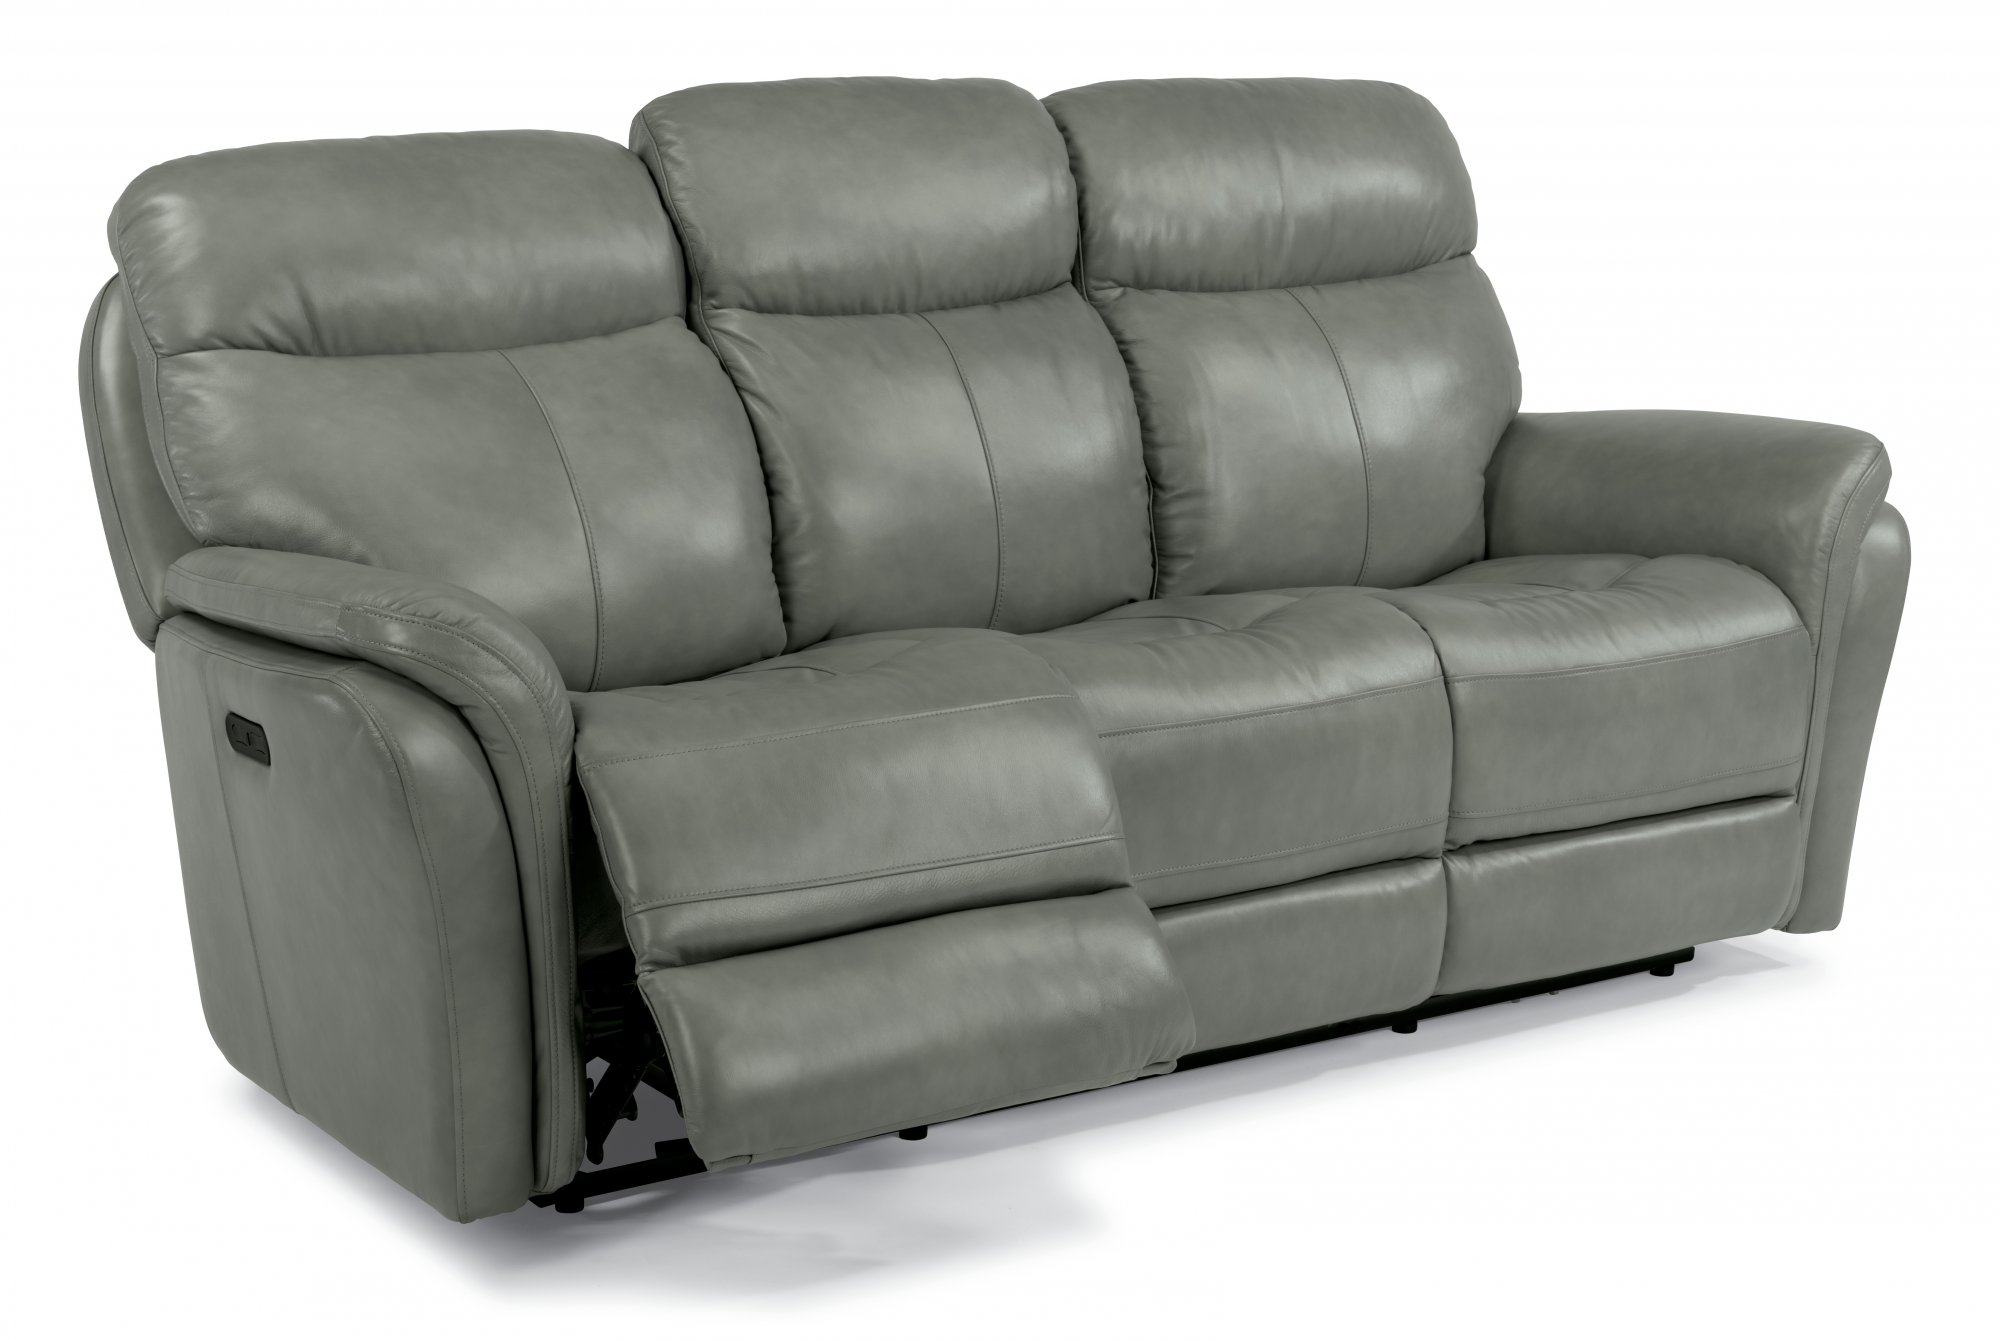 Flexsteel Zoey  Leather Power Reclining Sofa with Power Headrests